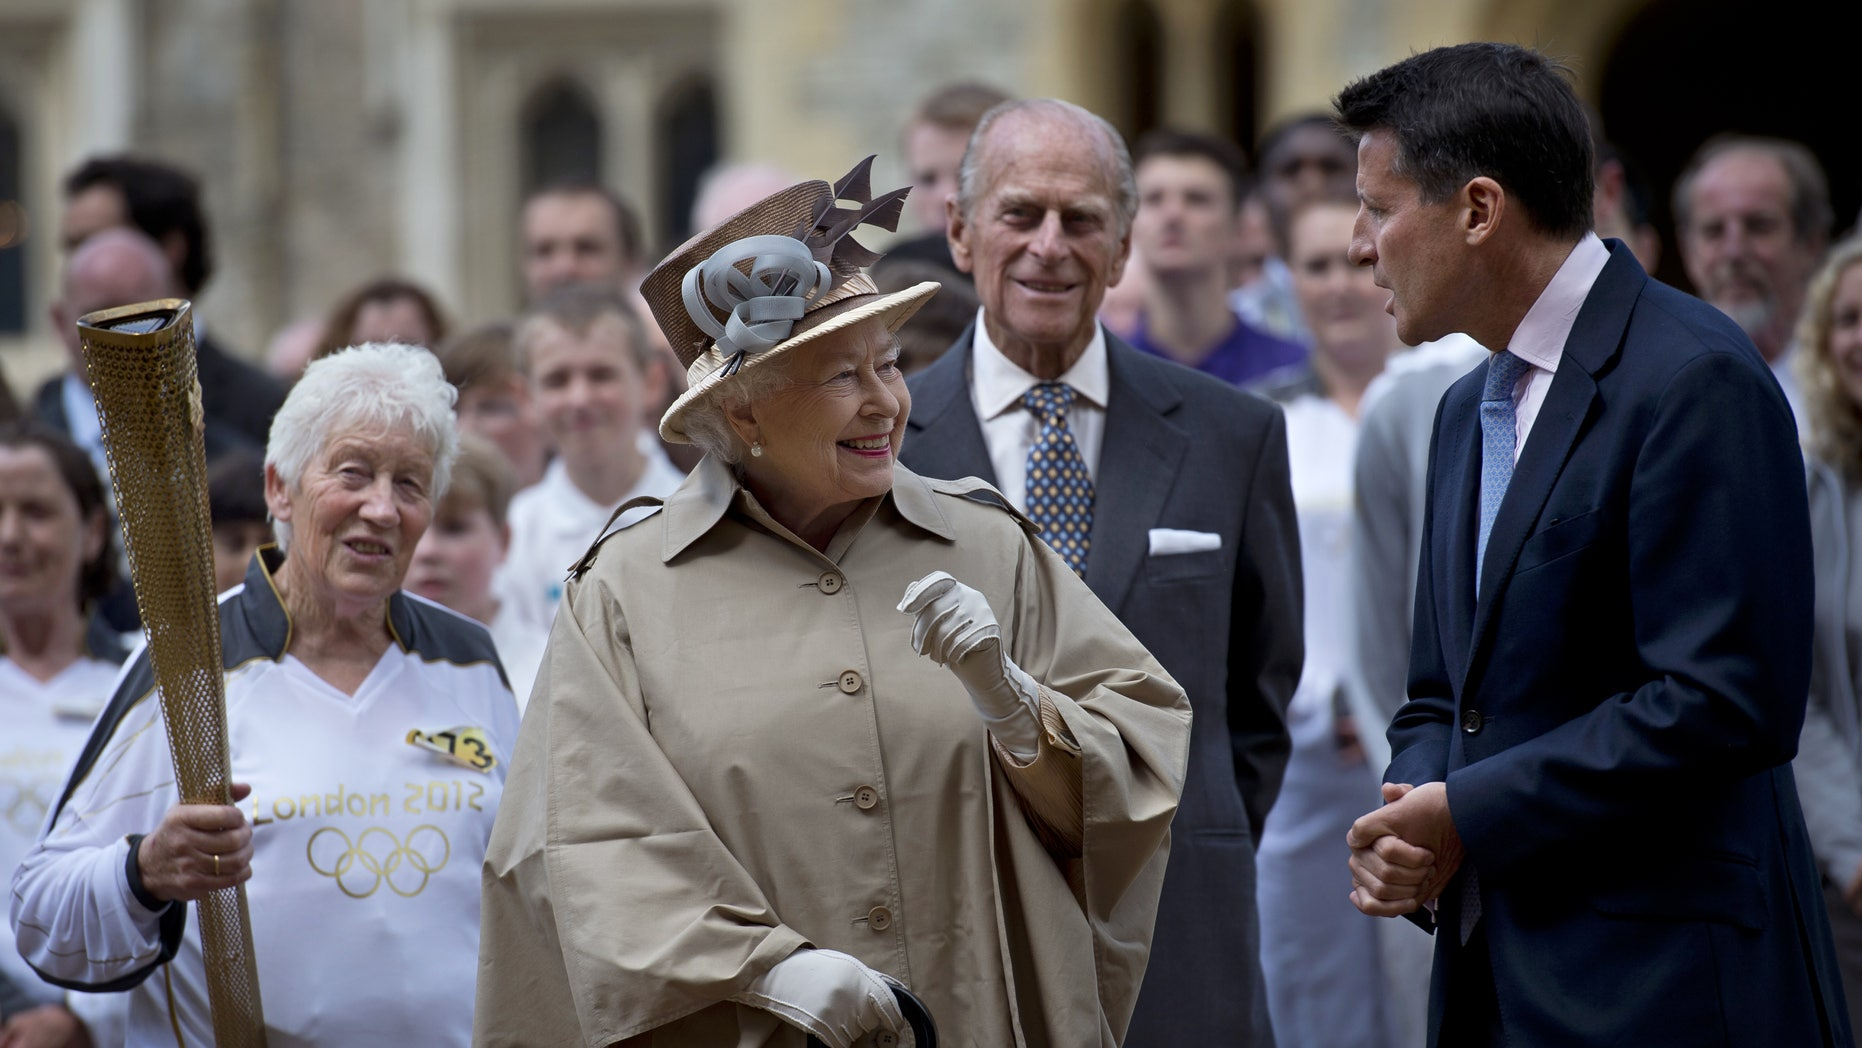 July 10, 2012: Britain's Queen Elizabeth II, second left, her husband Prince Philip, second right, London 2012 Chairman Sebastian Coe, right, and seventy four year-old Olympic torch bearer Gina Macgregor,  left, at Windsor Castle, Windsor, England.